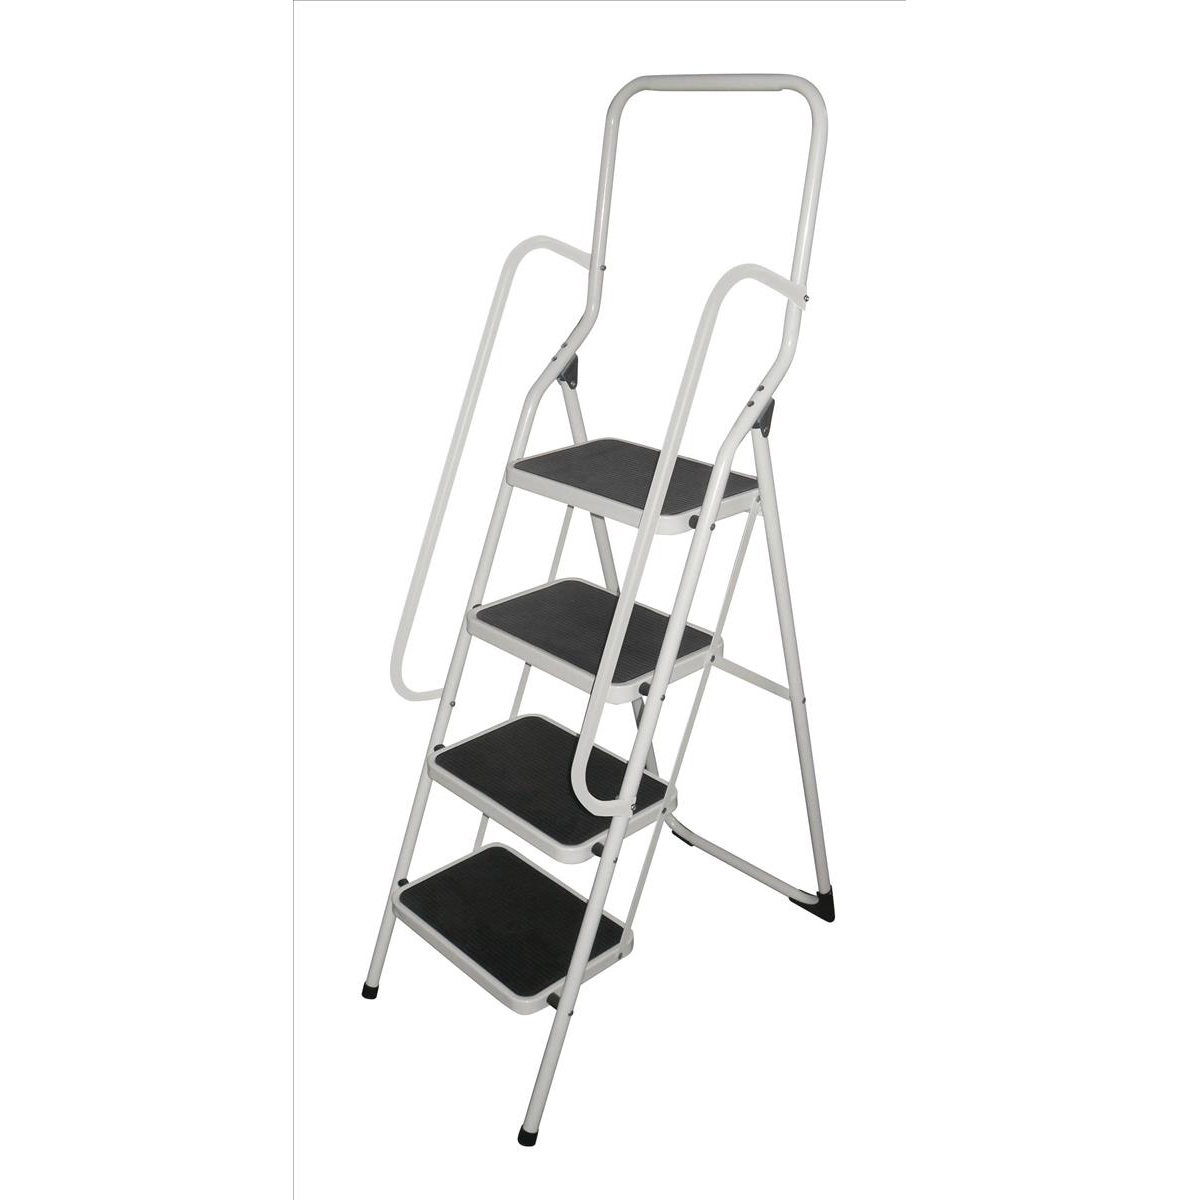 Cleaning Chemicals Metal Step Stool with Handrail 4 Step Folding Capacity 150kg White